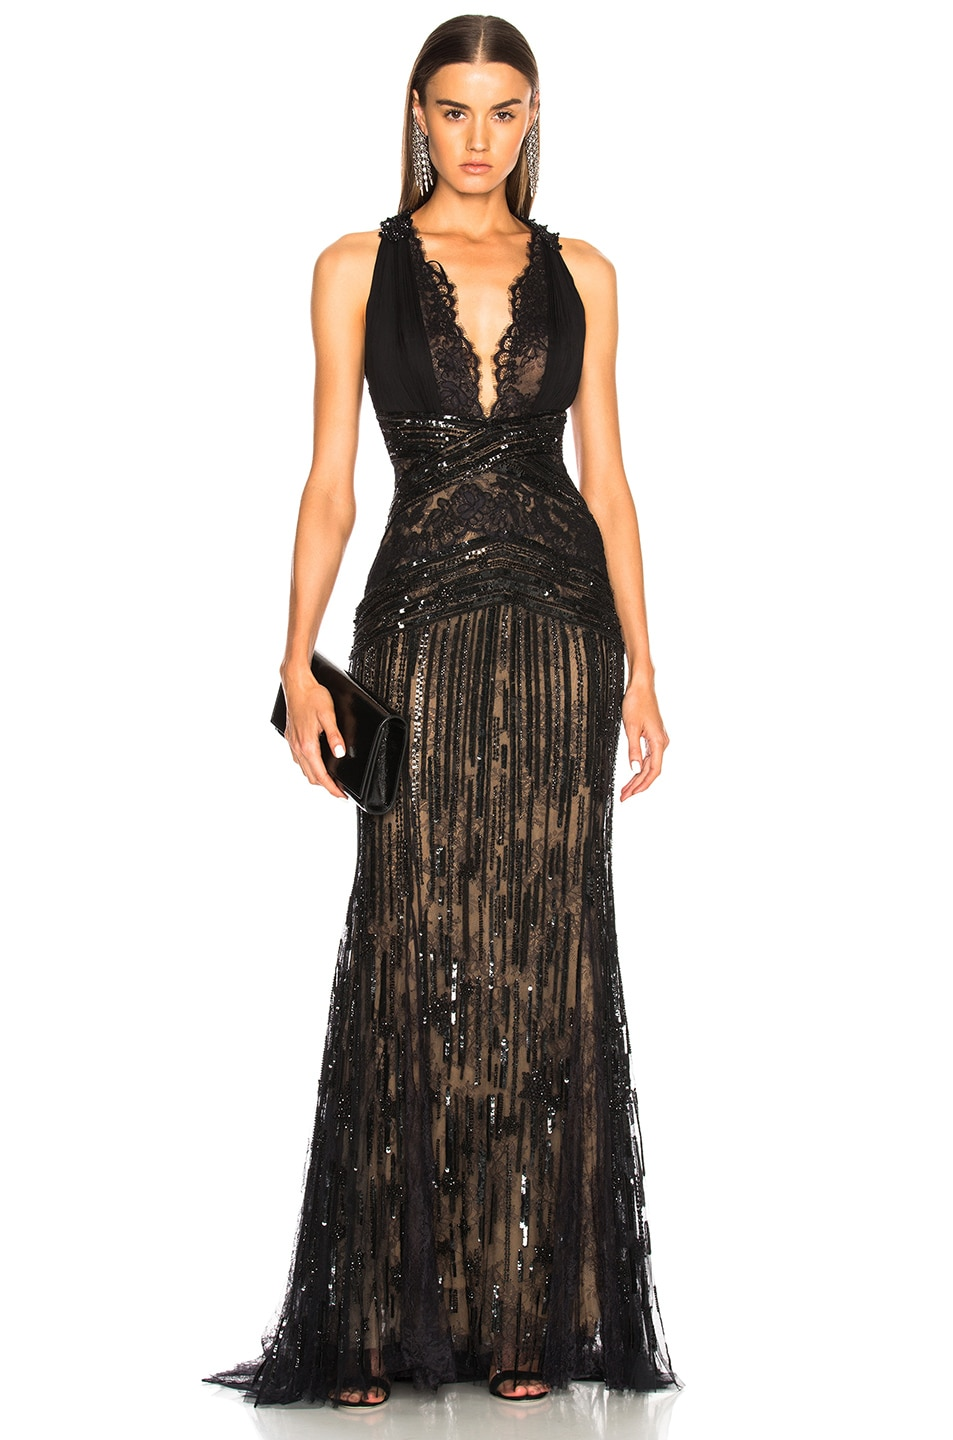 091f45c562b Image 1 of Zuhair Murad Embellished Lace Sleeveless Gown in Black